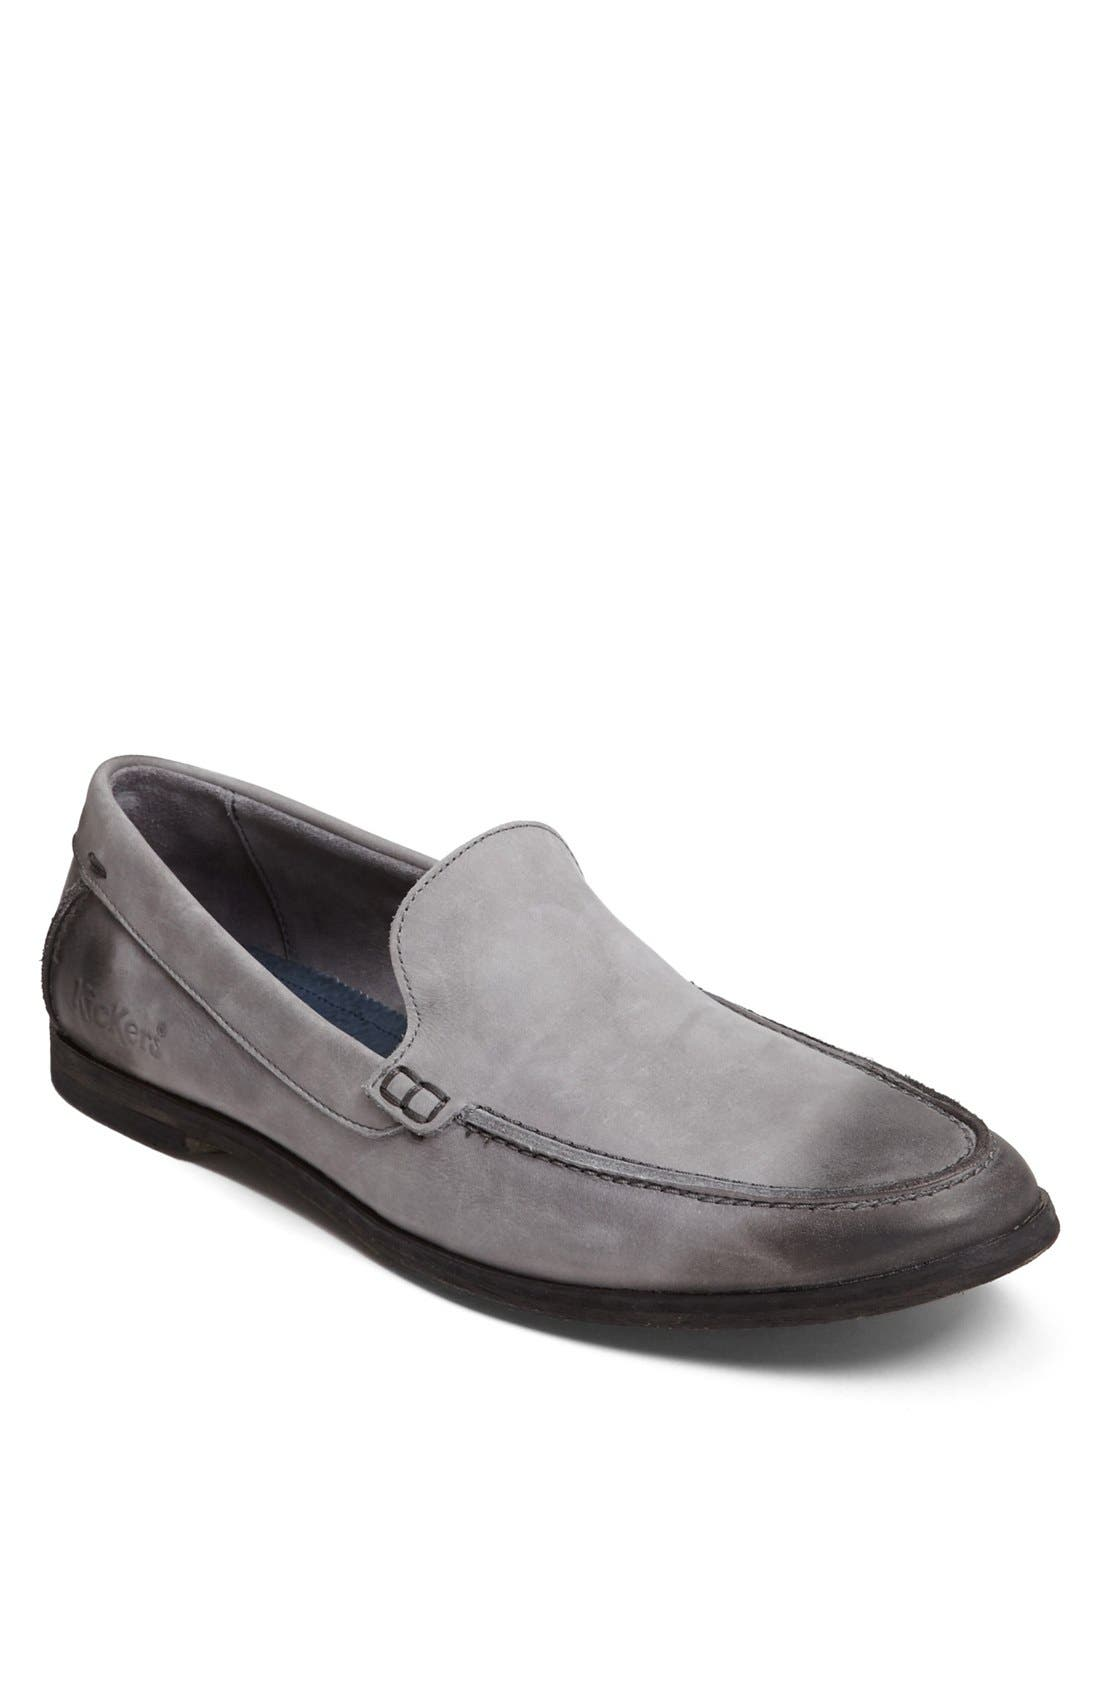 Alternate Image 1 Selected - Kickers 'Ringo 2' Loafer